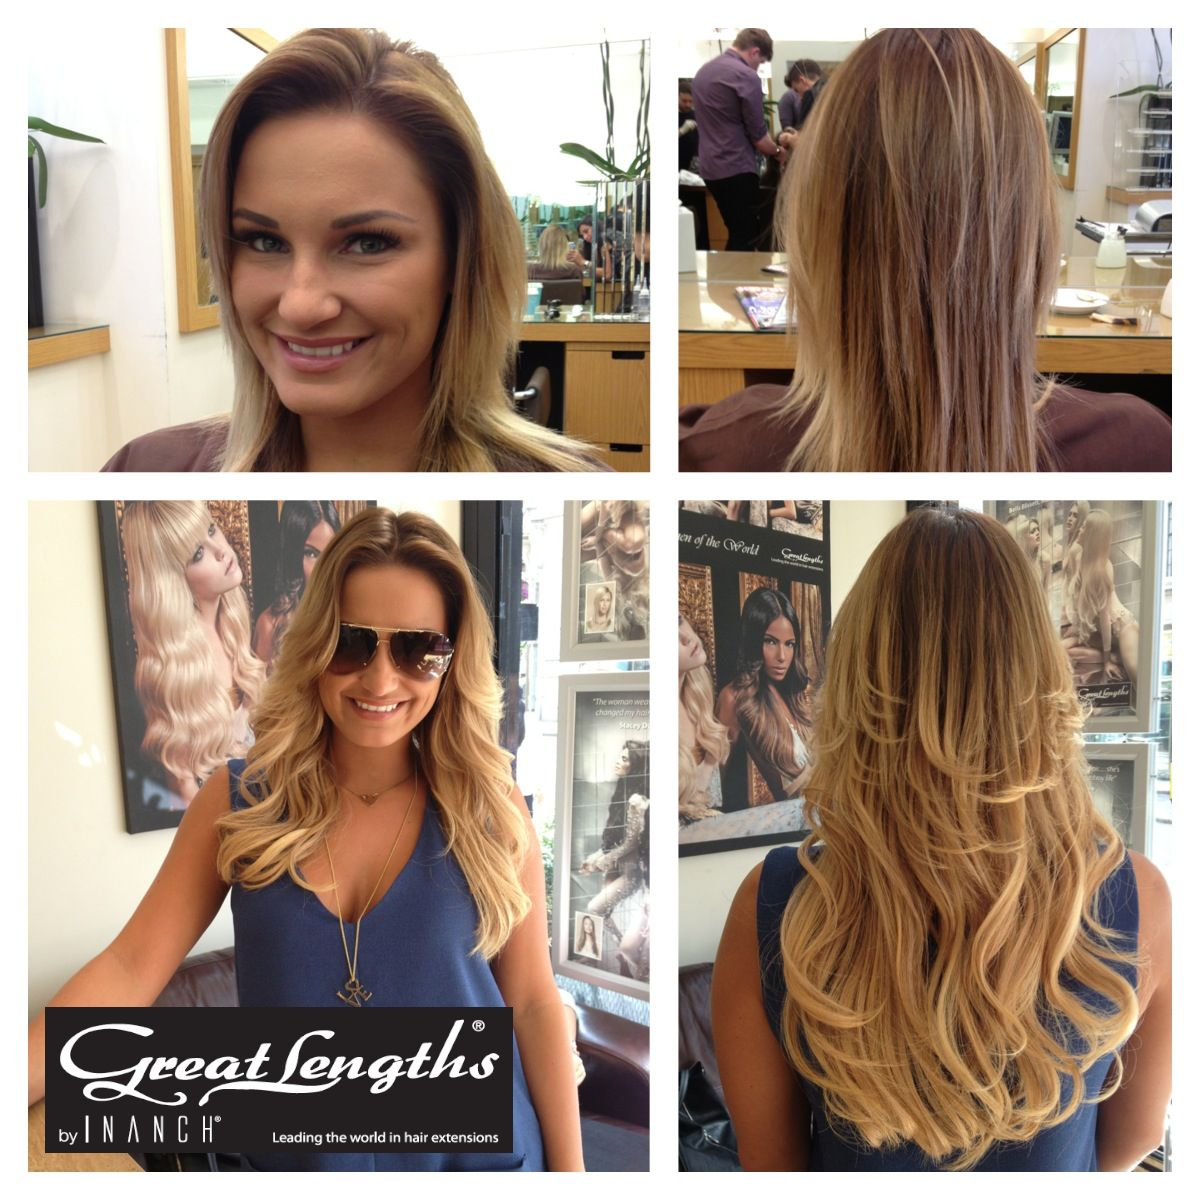 Towies most stylish lady sam faiers with her new dip dye hair towies most stylish lady sam faiers with her new dip dye hair extensions summerombrehair pmusecretfo Image collections